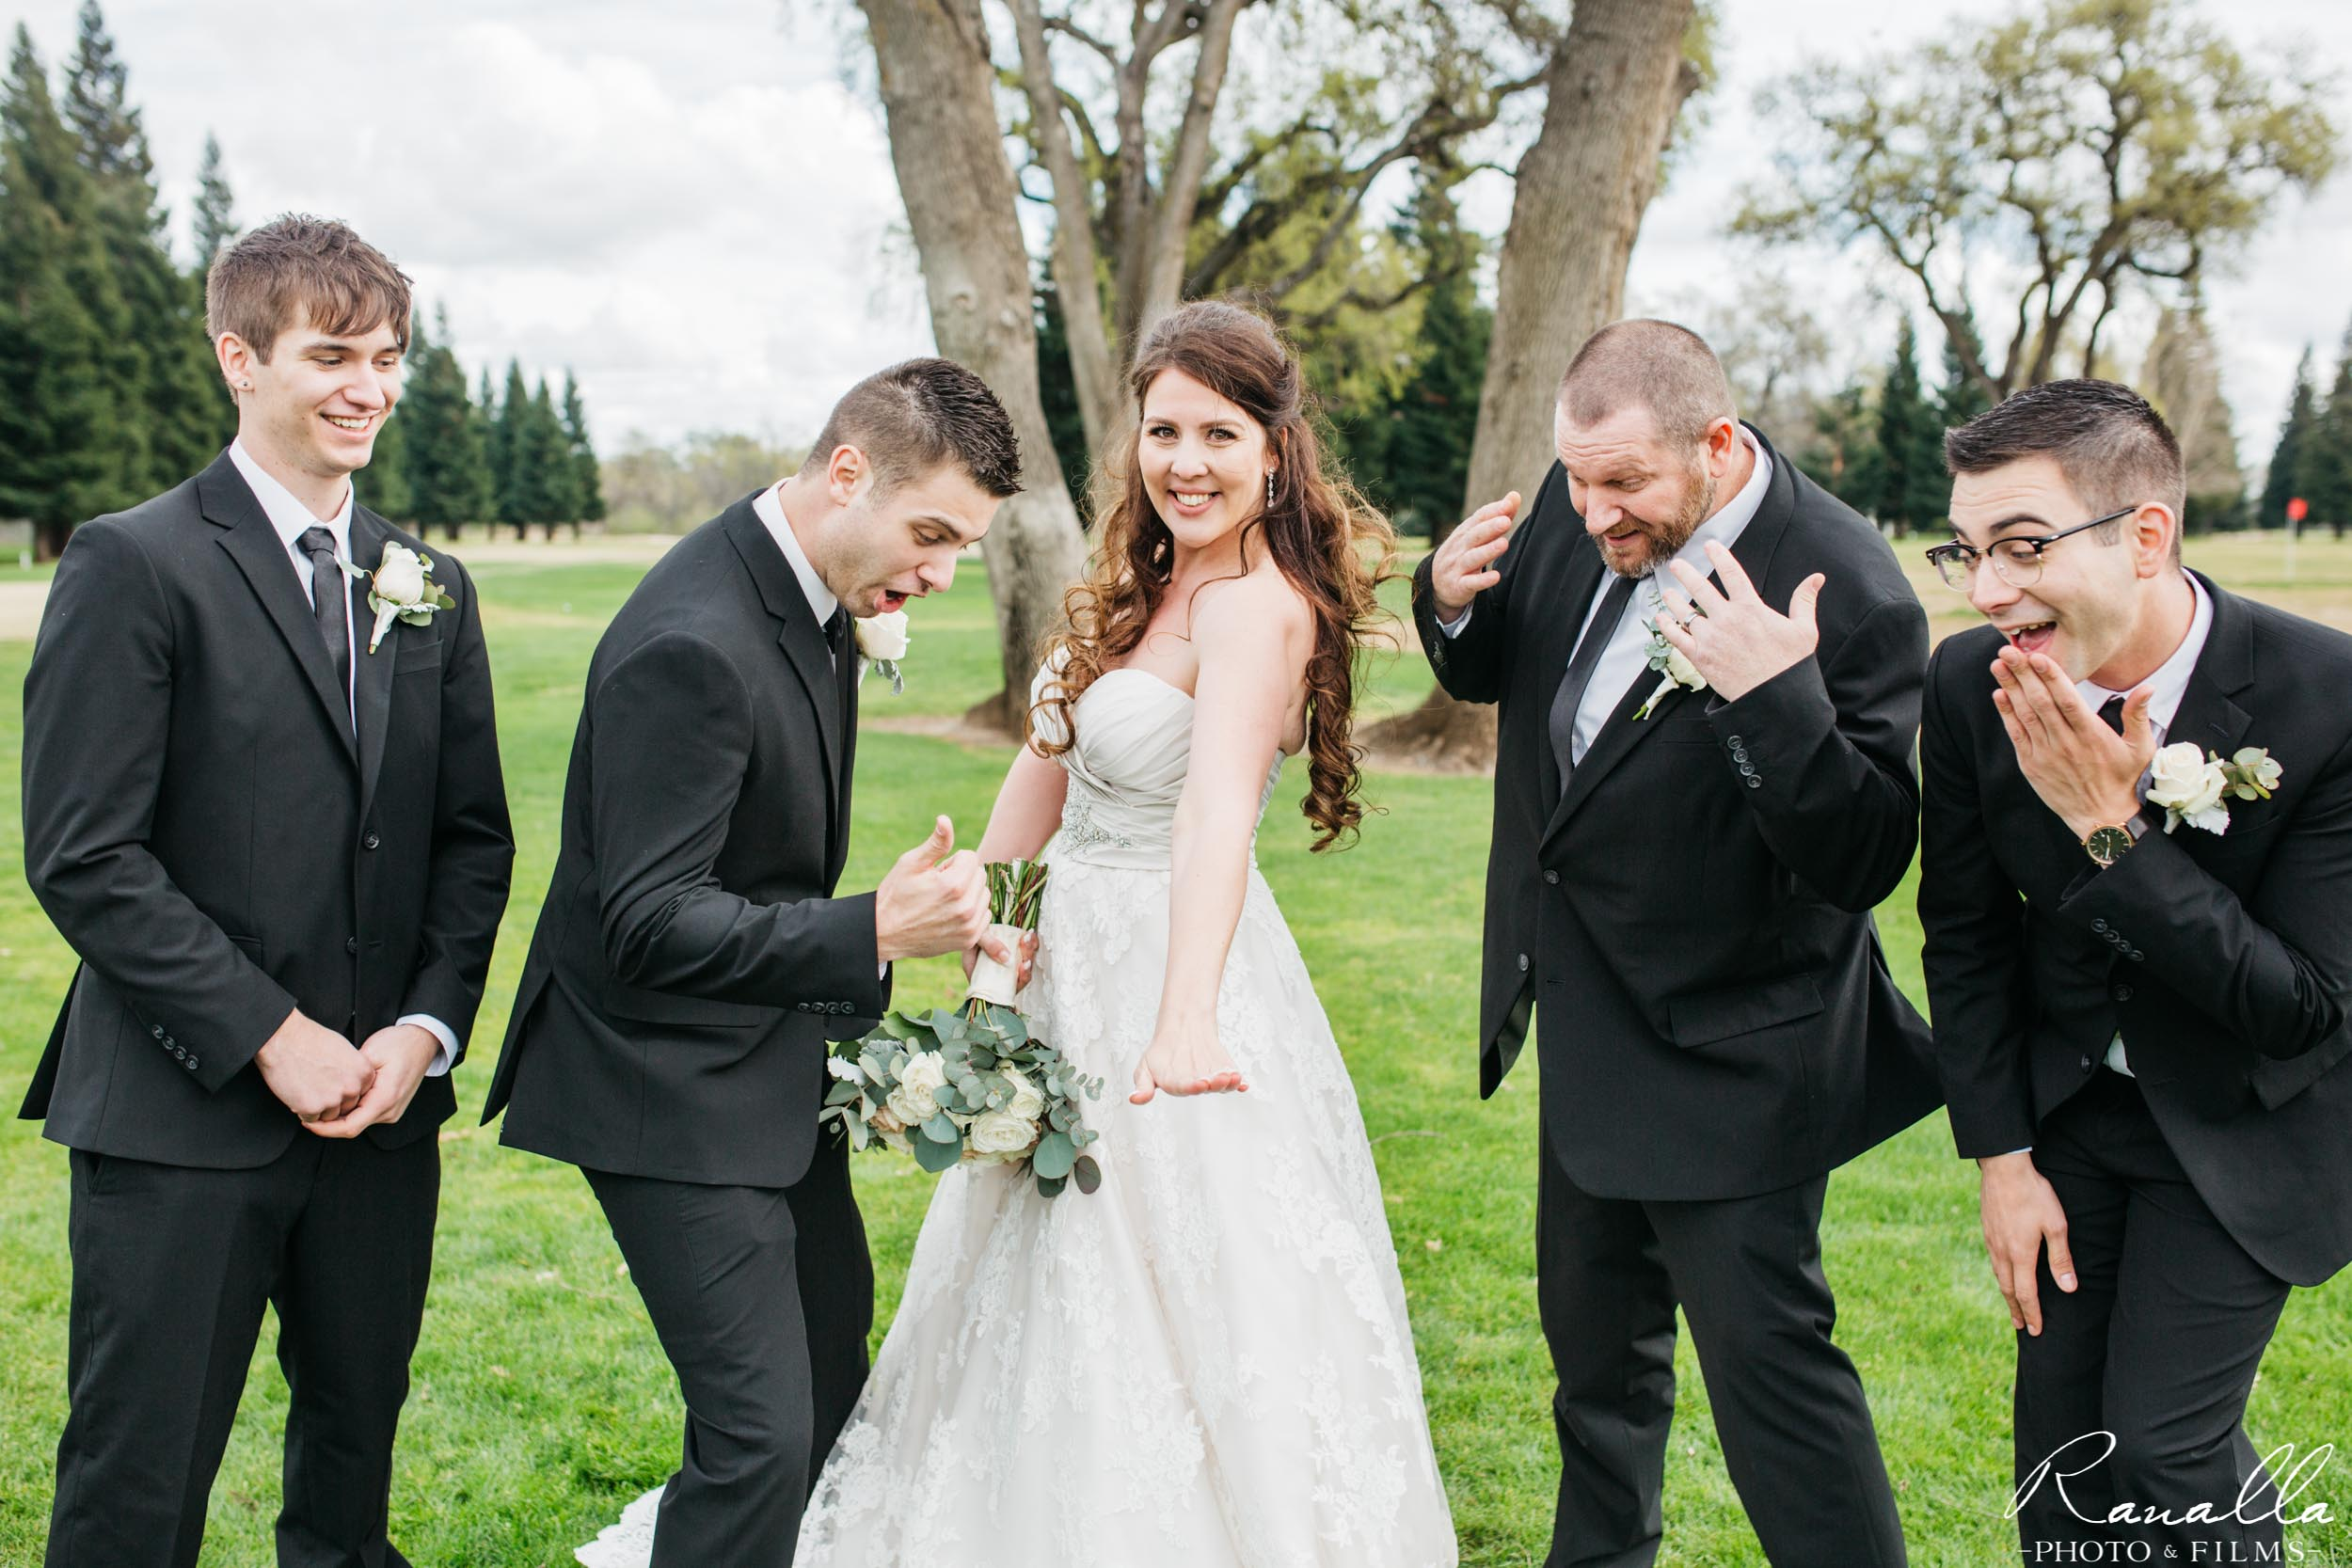 Chico Wedding Photography- Bride and Groomsmen- Butte Creek Country Club- Simply Elegant Bridal- Ranalla Photo & Films